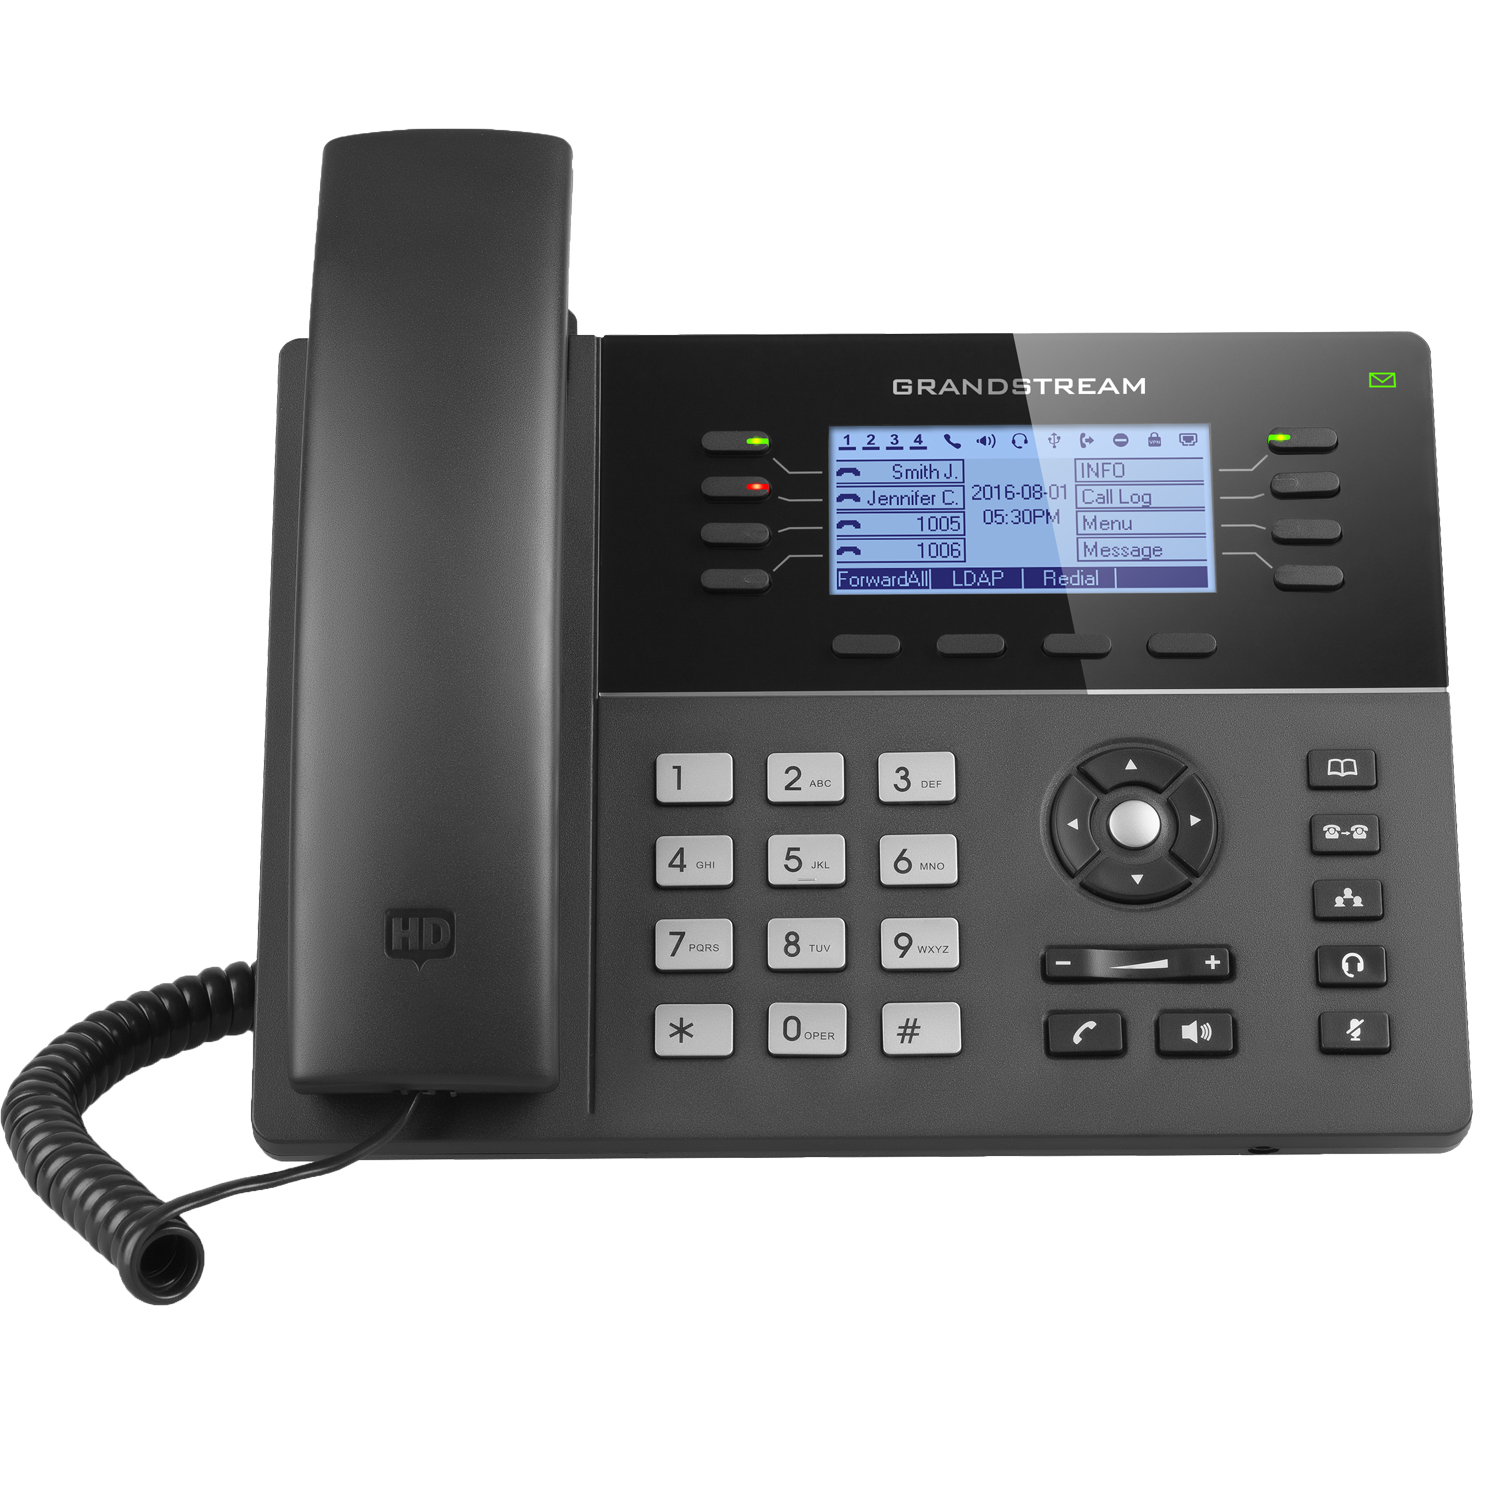 Grandstream GXP1780/82 Mid Range IP Phone